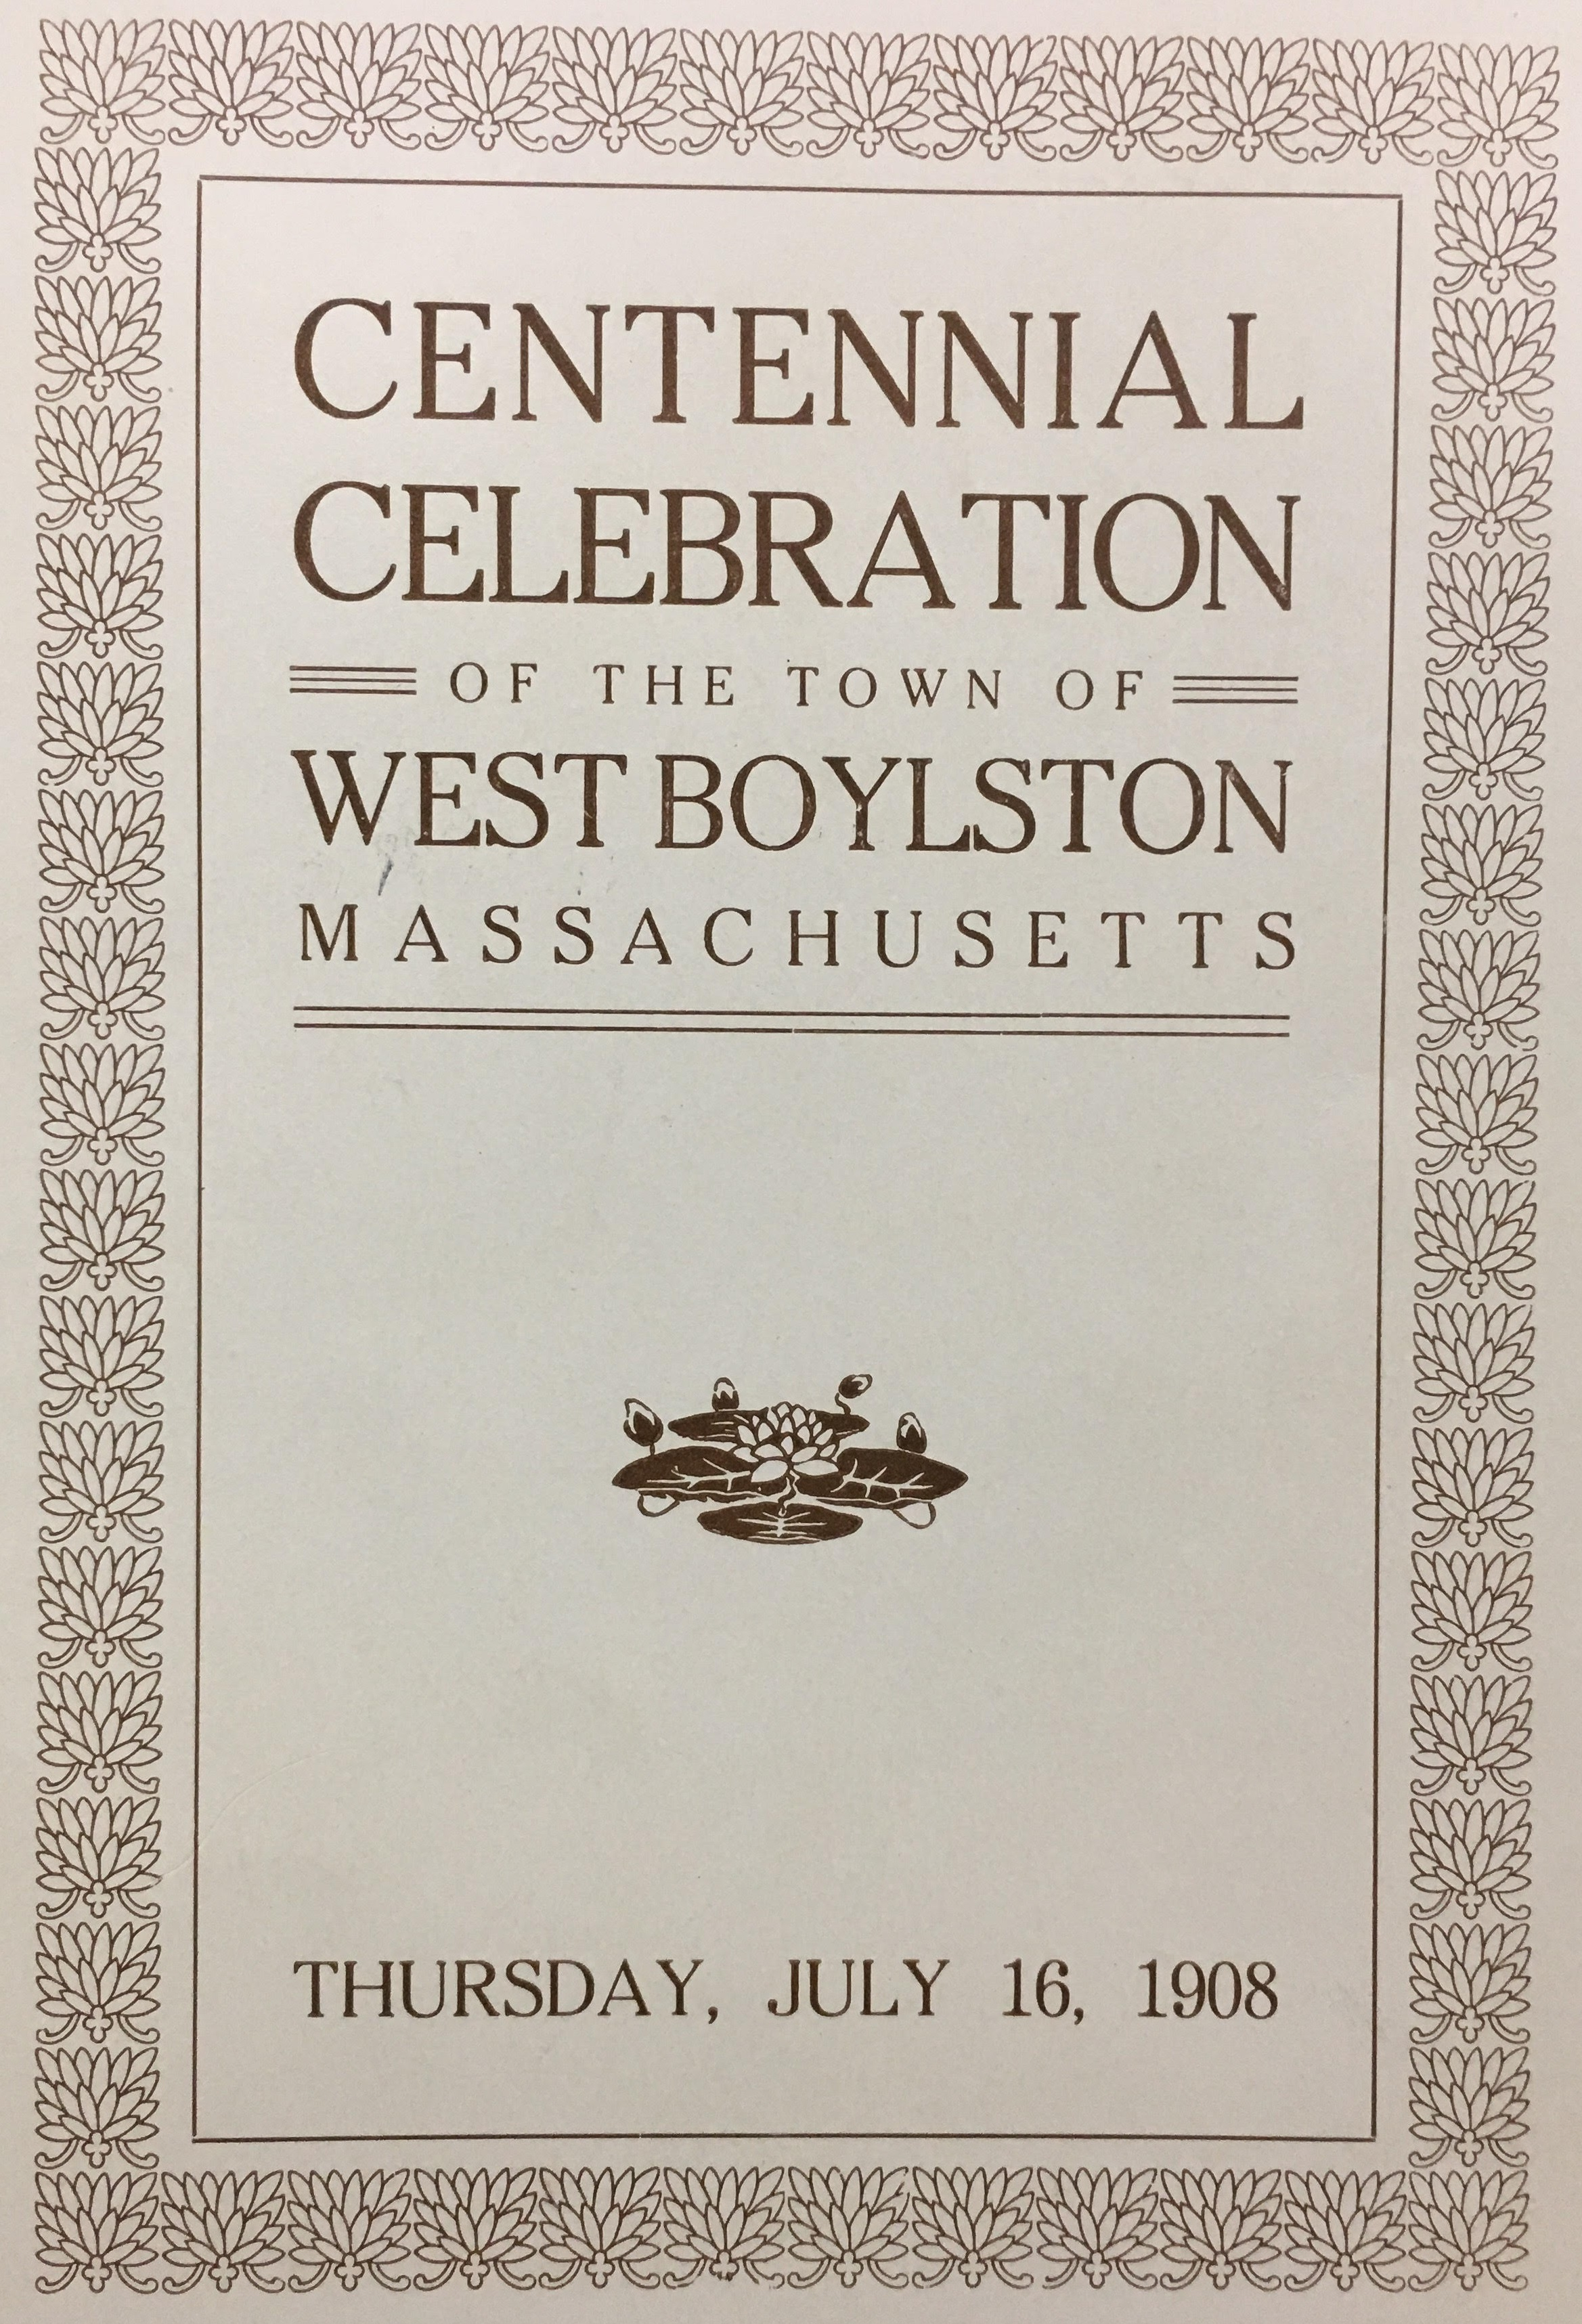 Program for the Centennial Ceremony July 1908